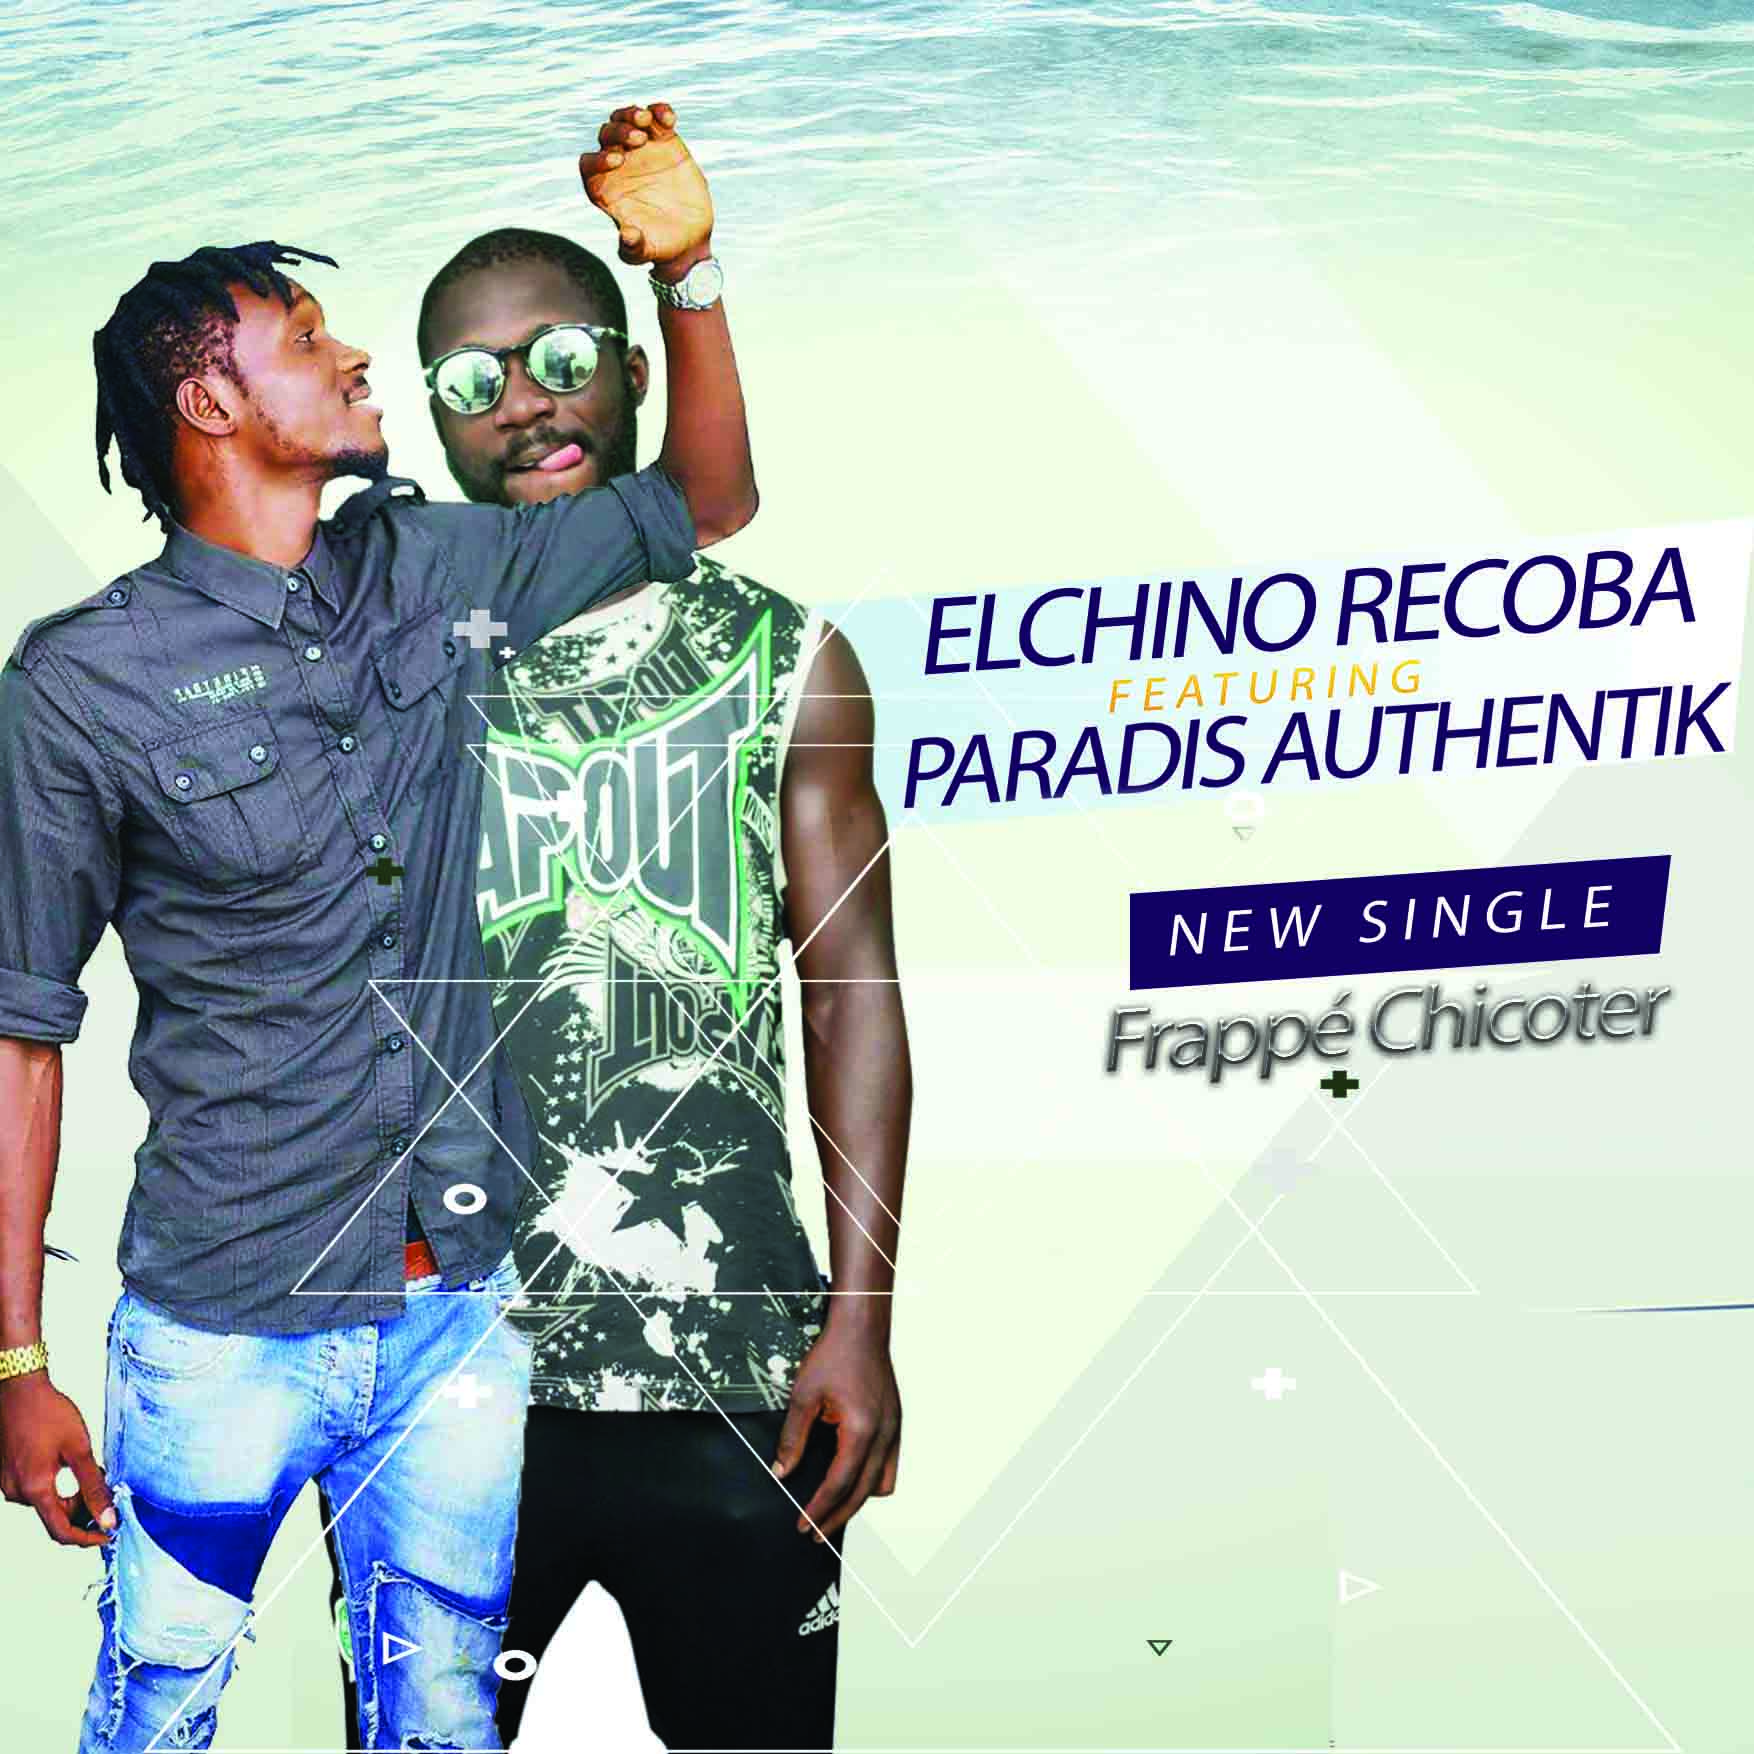 Elchino Recoba feat Paradis Authentik - Frappé Chicoter